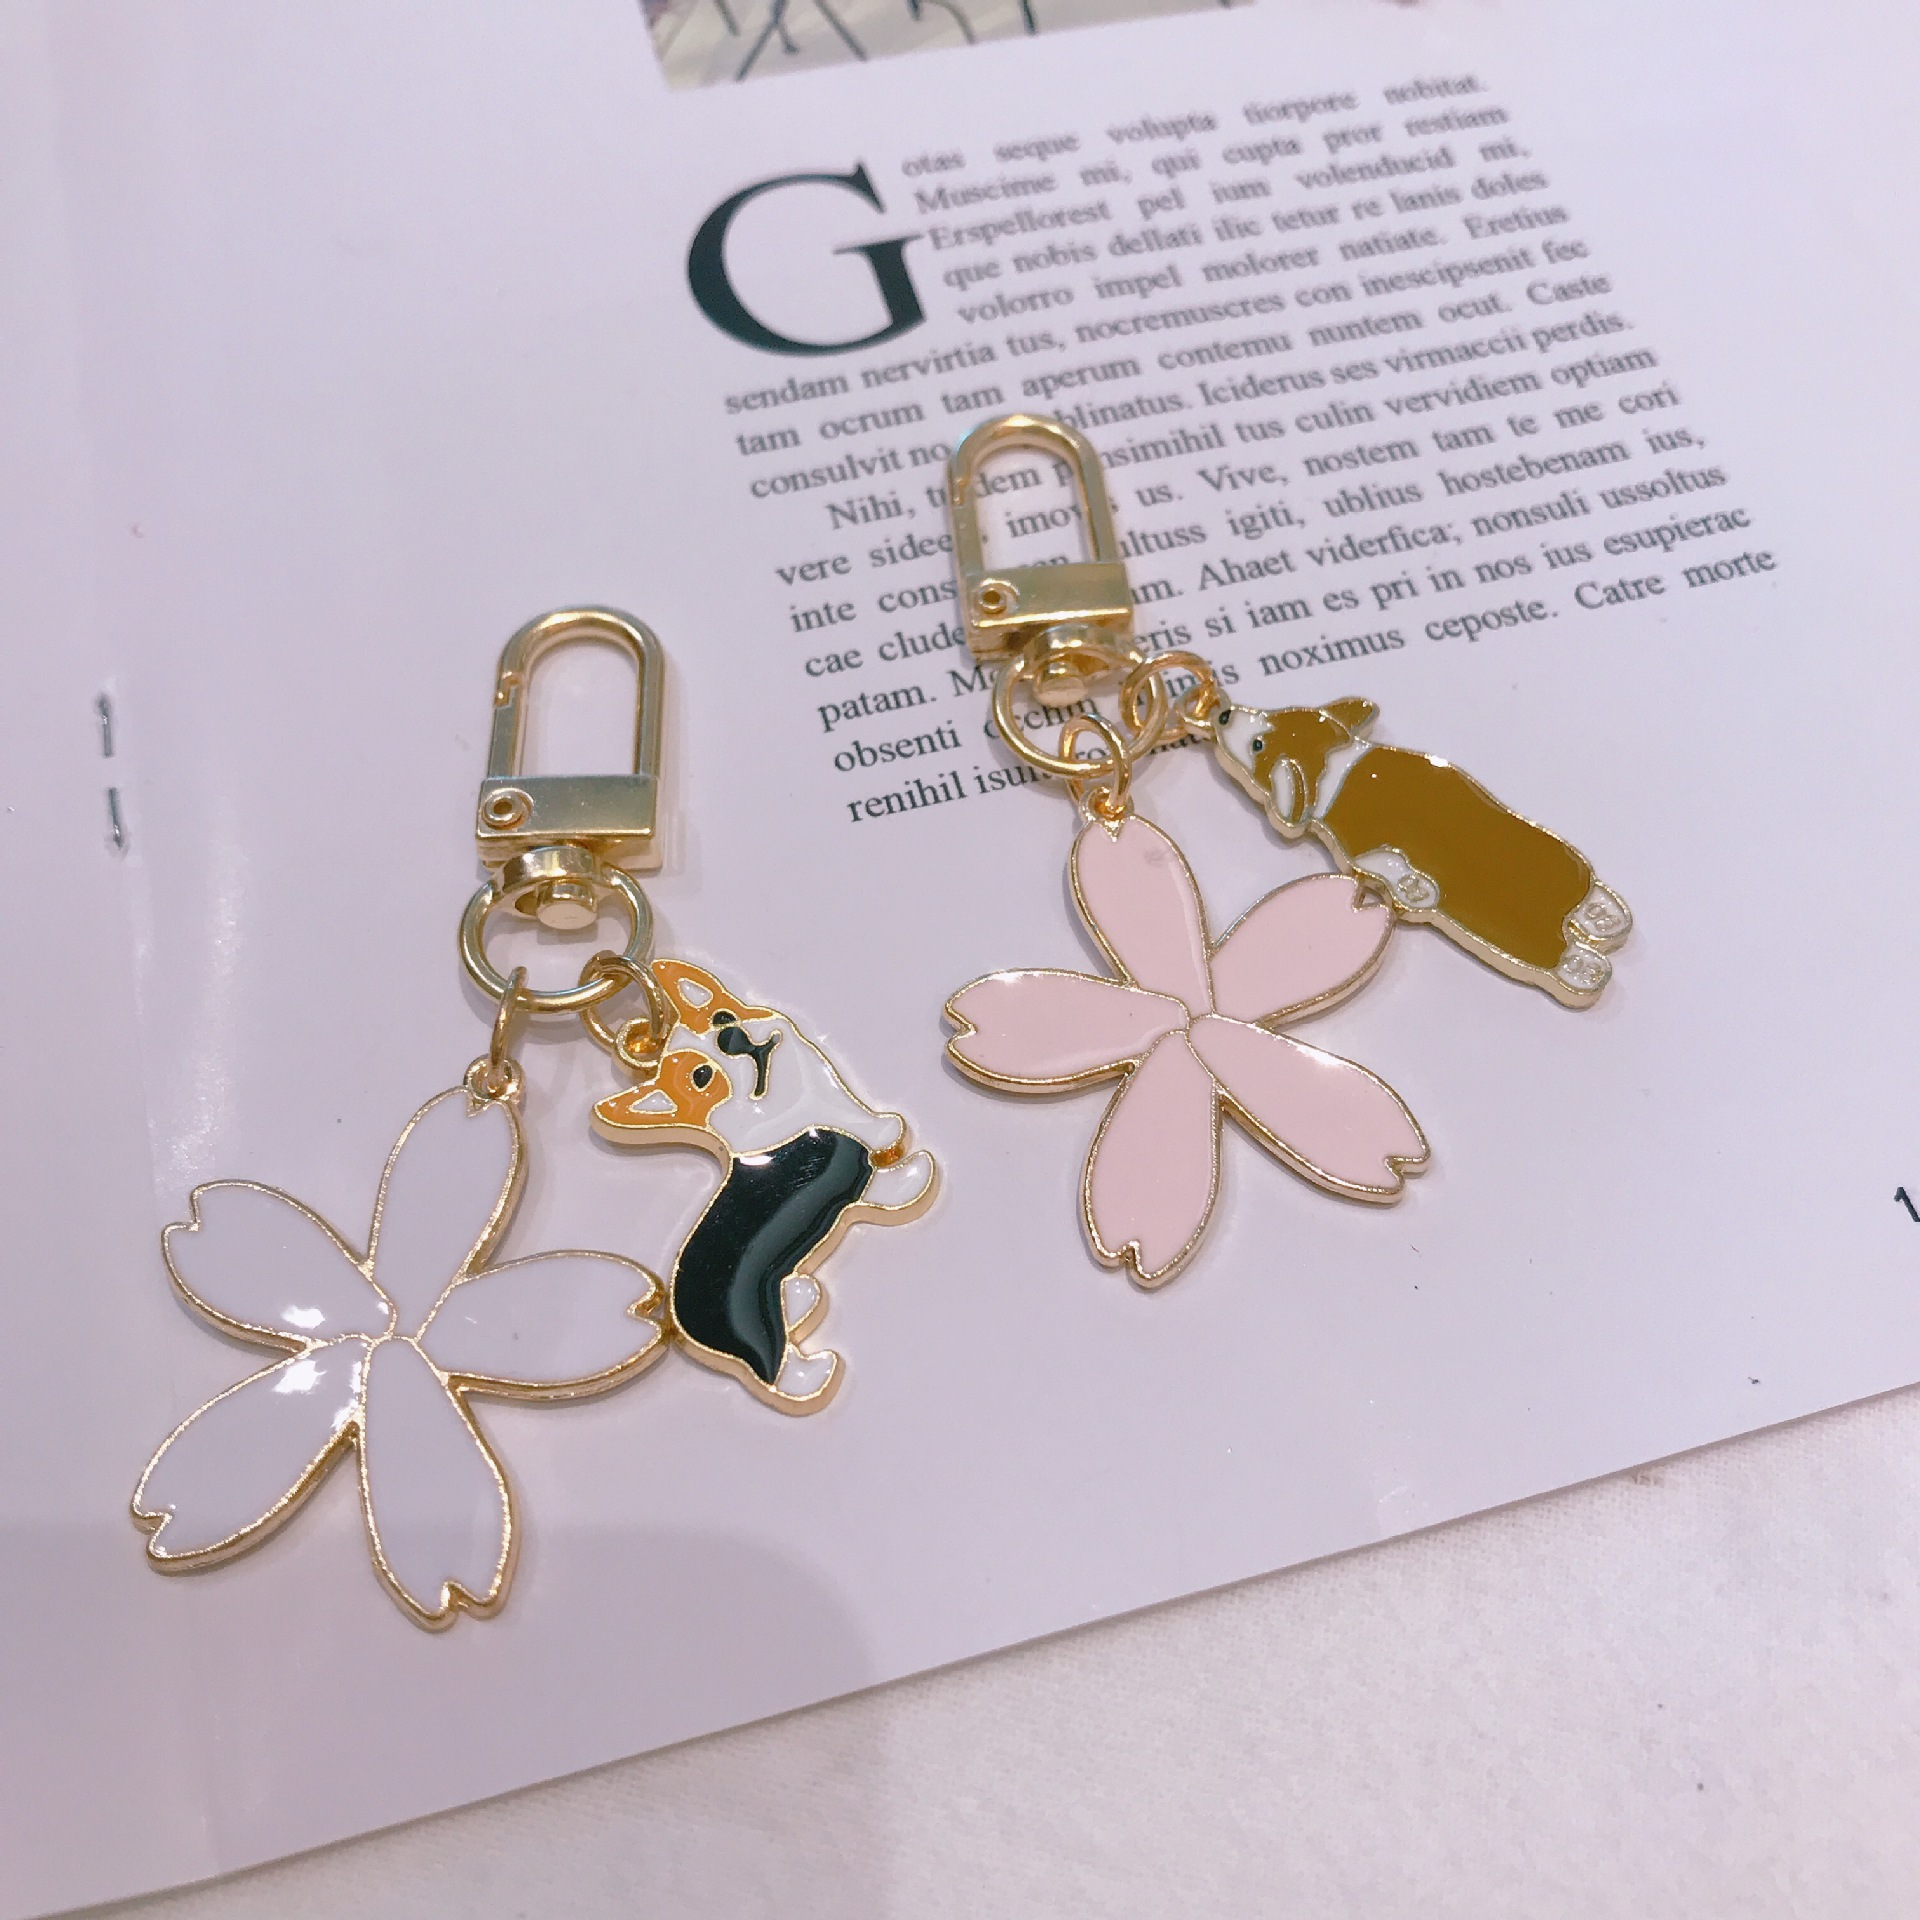 Cartoon Dog Flower Gold Keychain For Girl Women Key Chains Ring Car Bag Pendant Charms Airpods Accessories